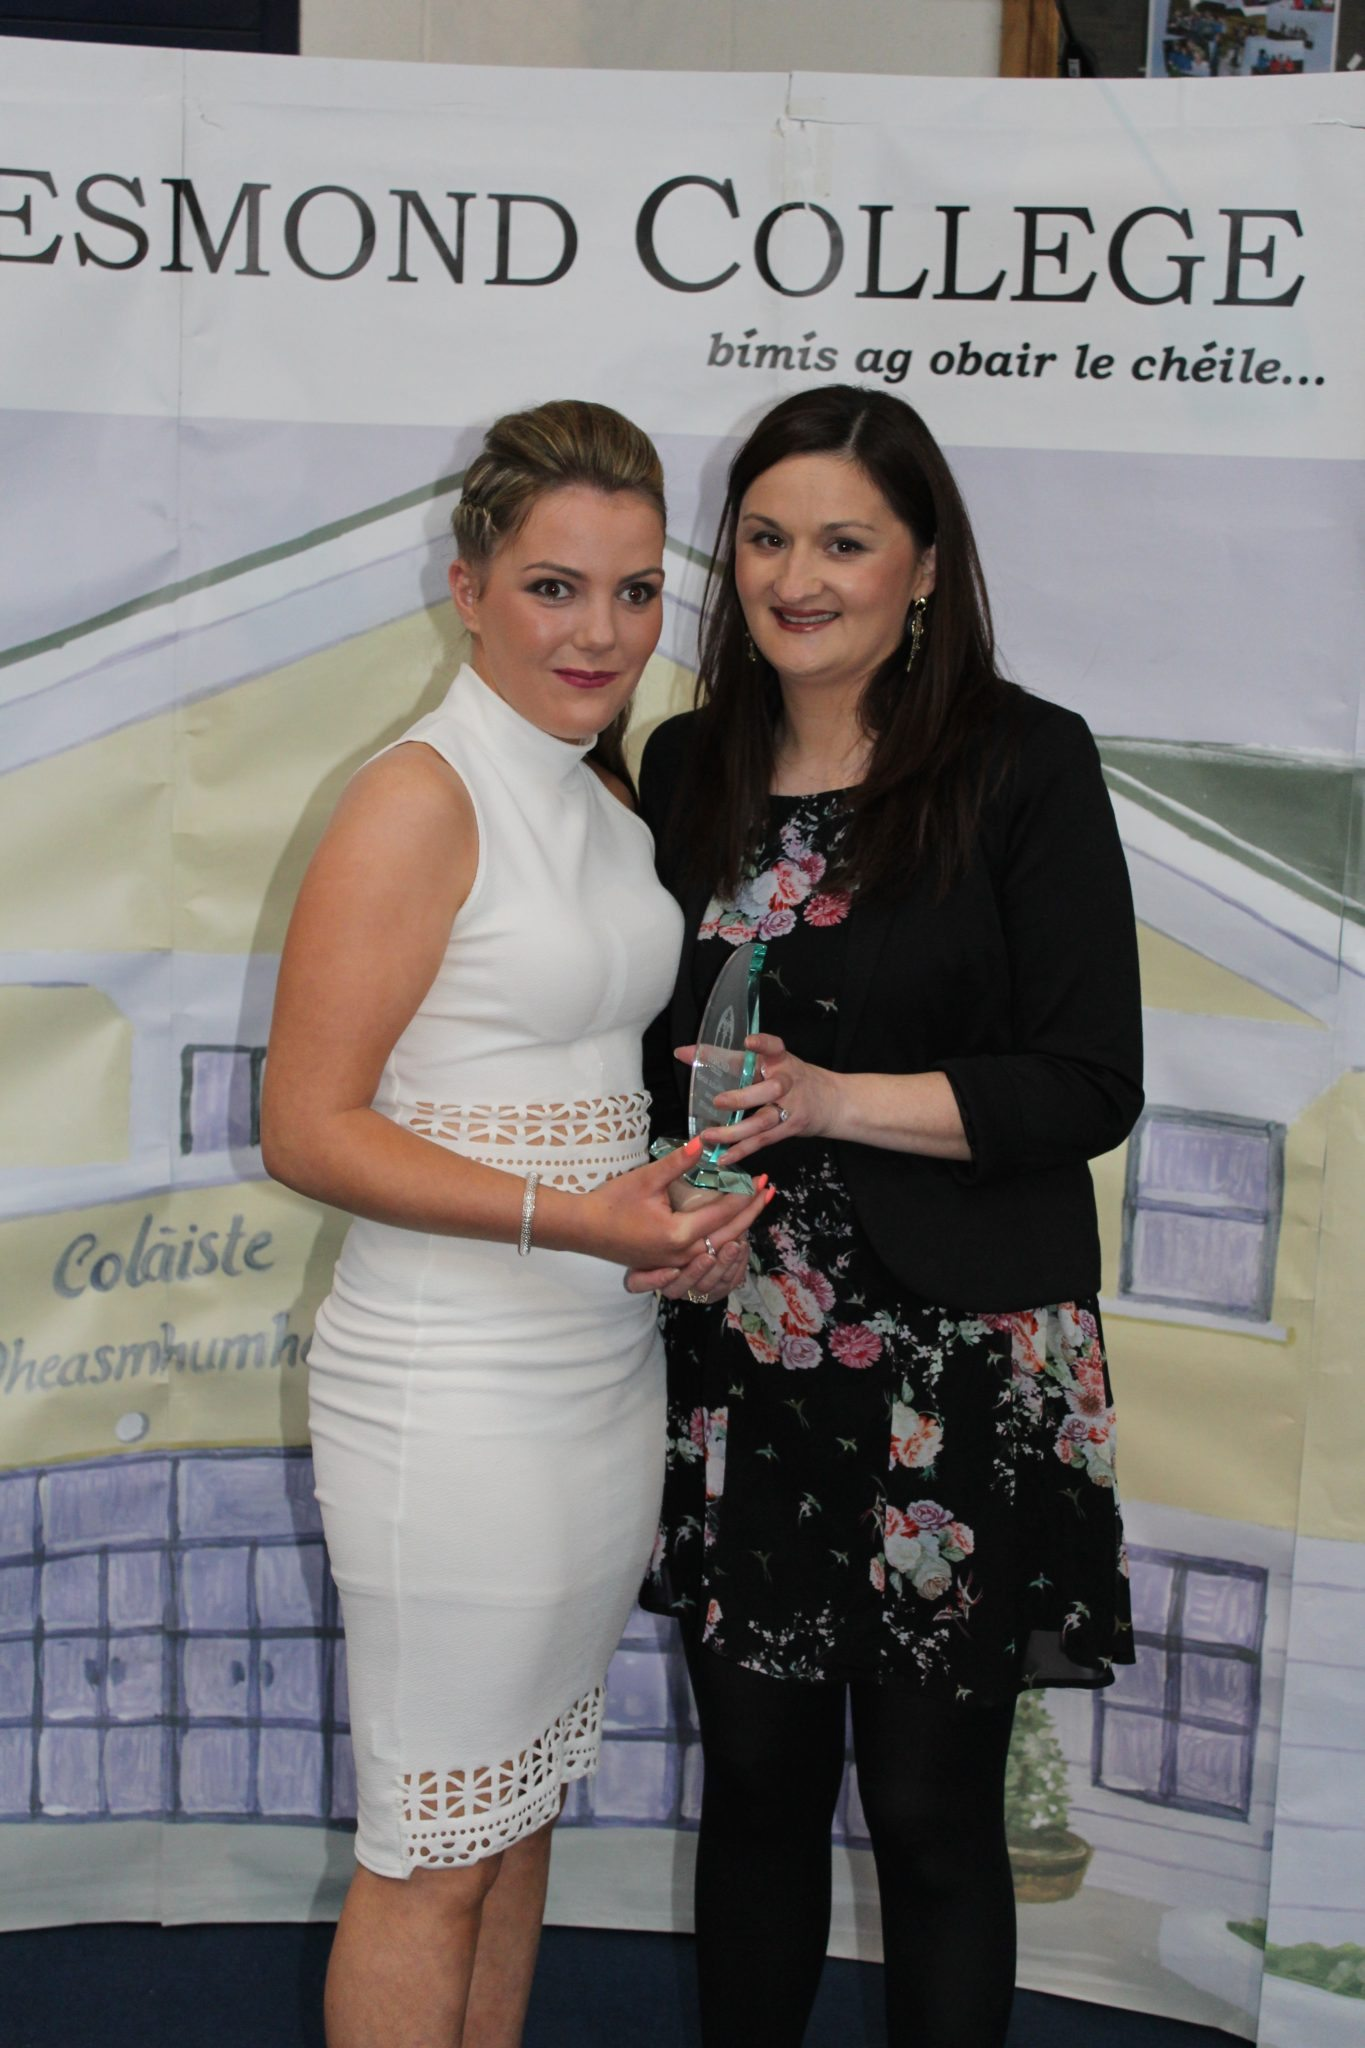 desmond College Leaving Certificate graduation 2015: Cooperation and diligence award: Siobhan Moloney with Ms O'Mahony